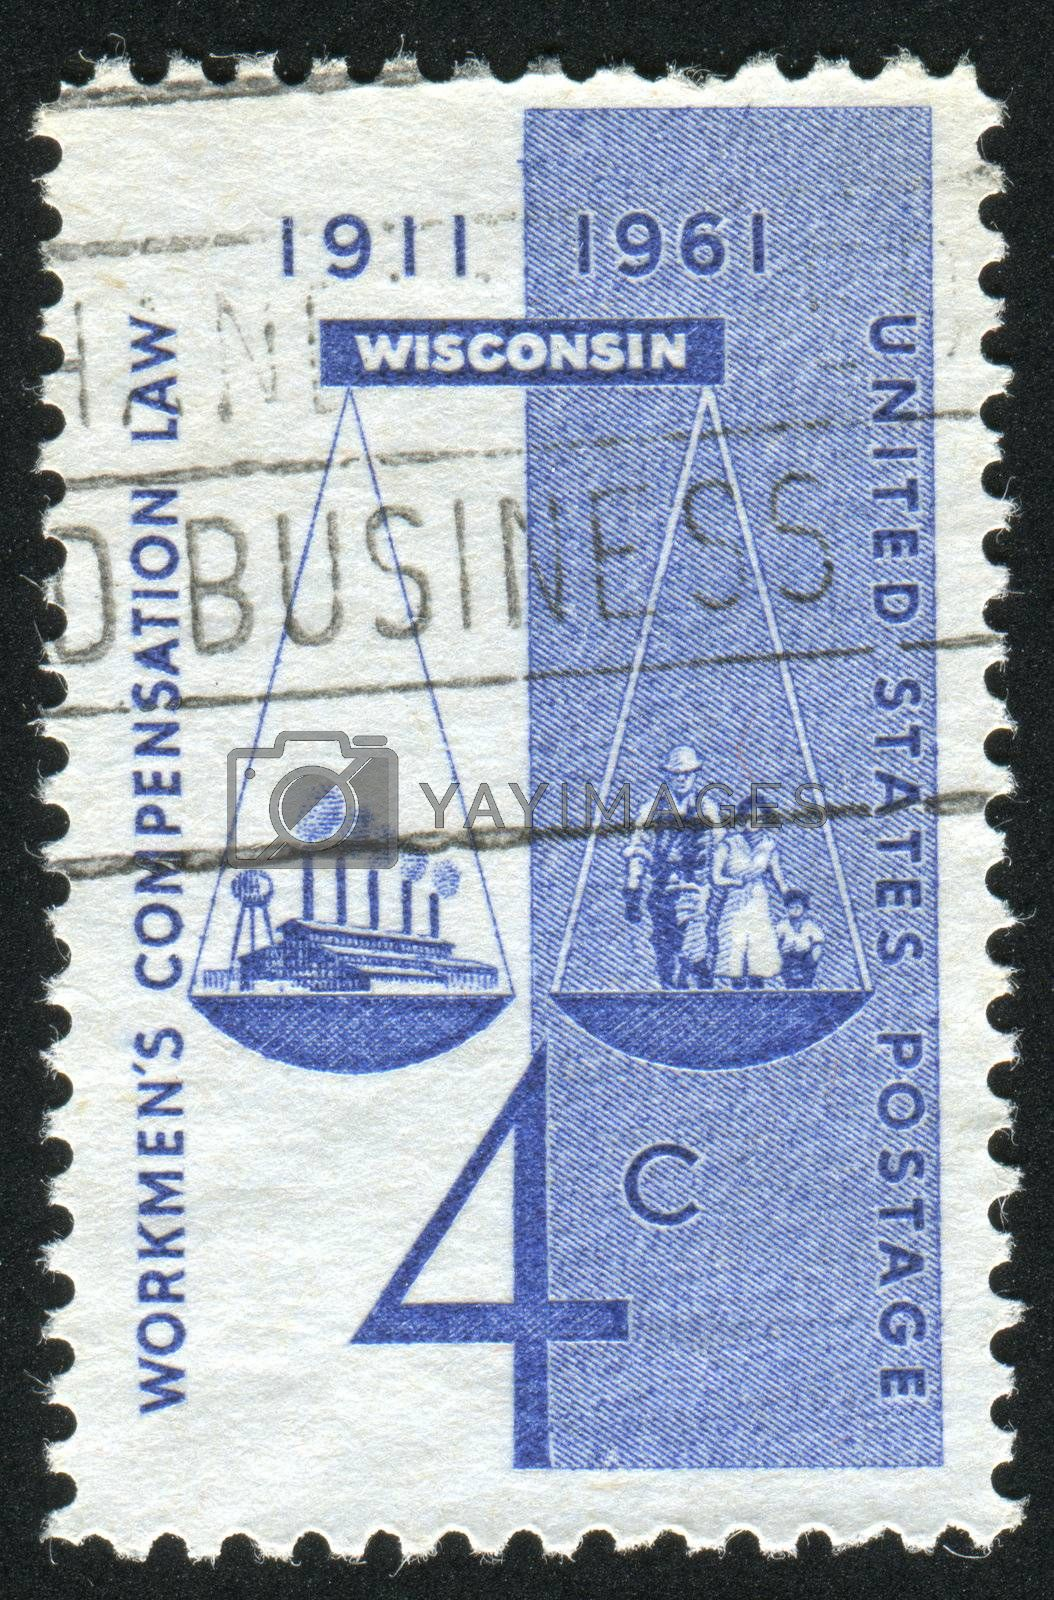 UNITED STATES - CIRCA 1961: stamp printed by United states, shows Scales of Justice Factory, Worker and Family, circa 1961